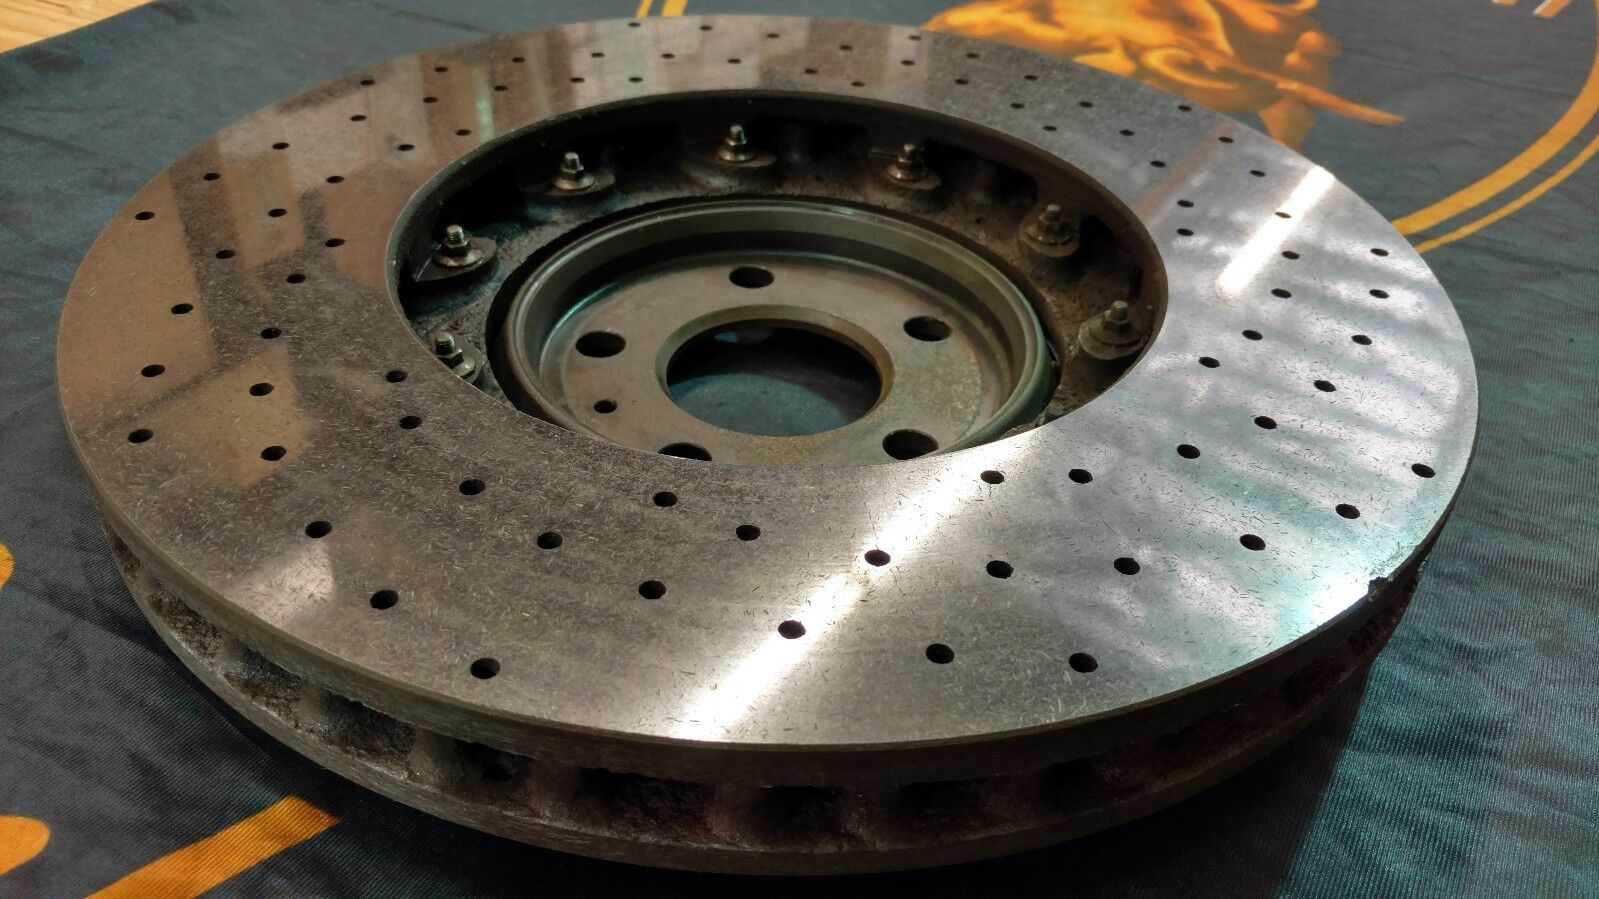 Used Lamborghini Huracan Discs, Rotors and Related Hardware for Sale